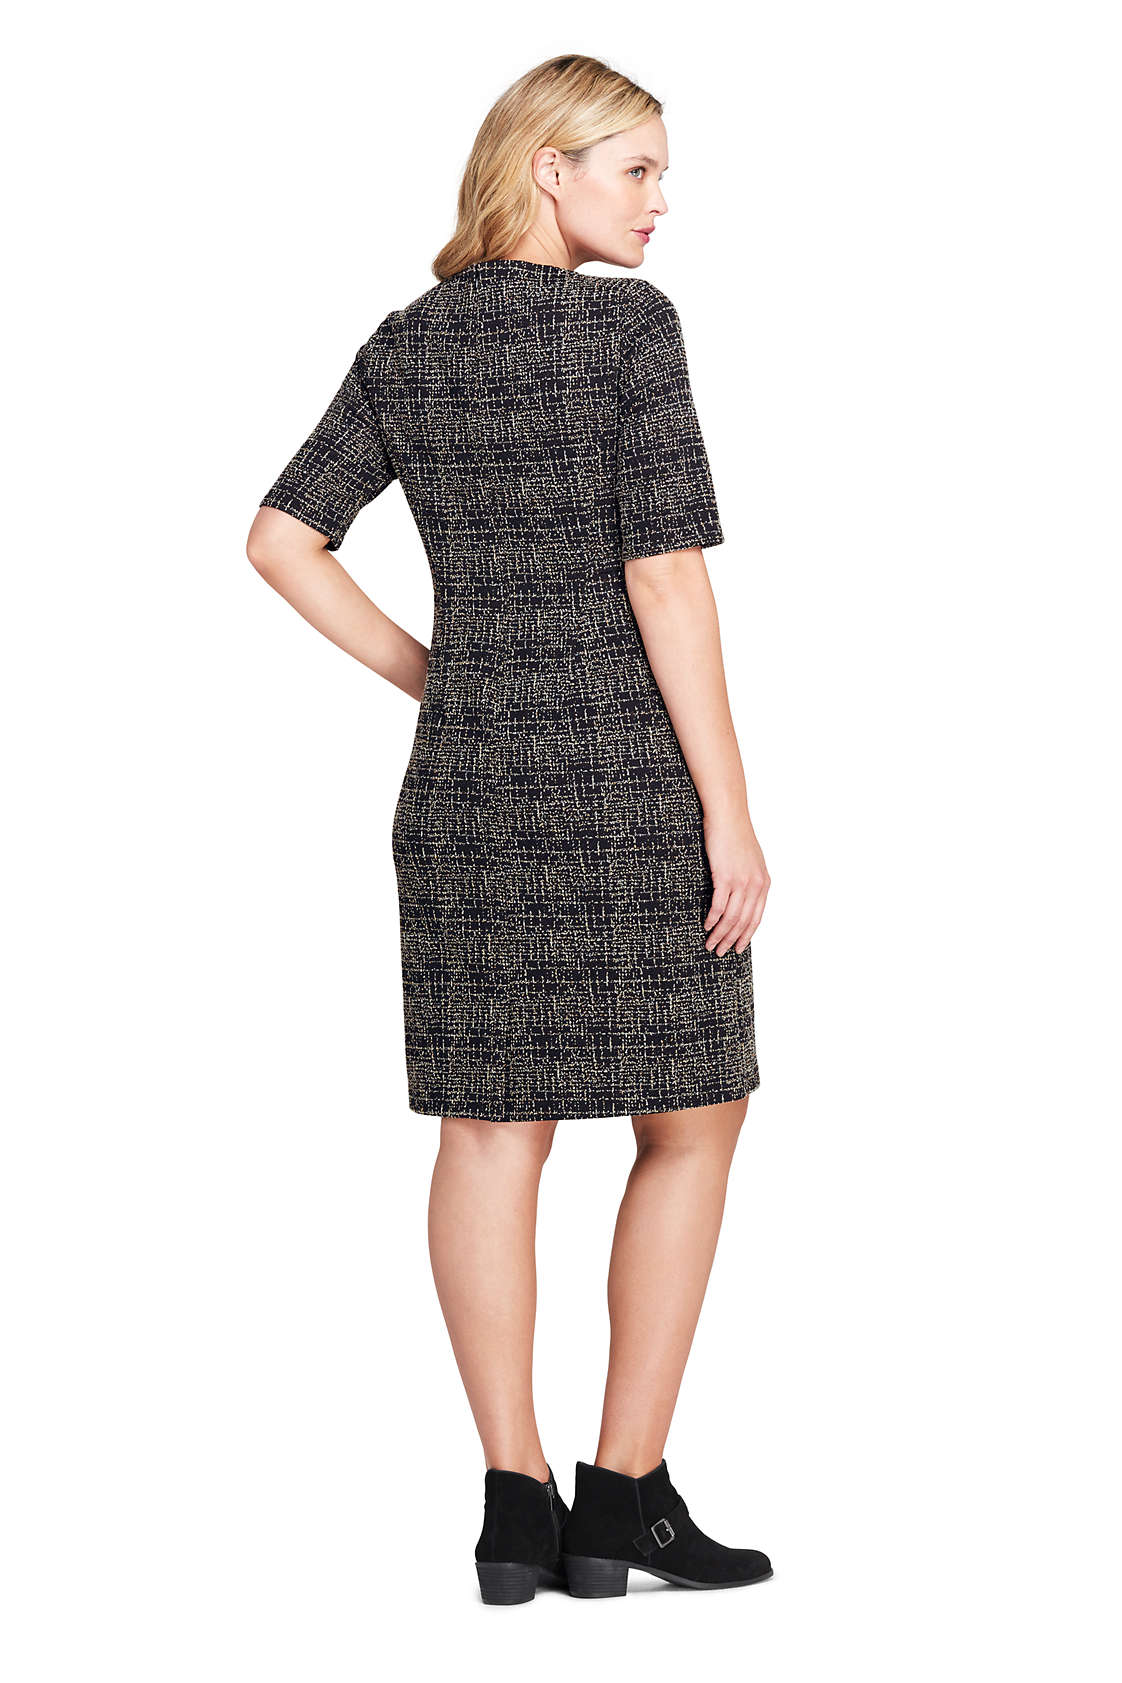 Plus Size Ponte Knit Sheath Tweed Dress with Elbow Sleeves Land\'s End